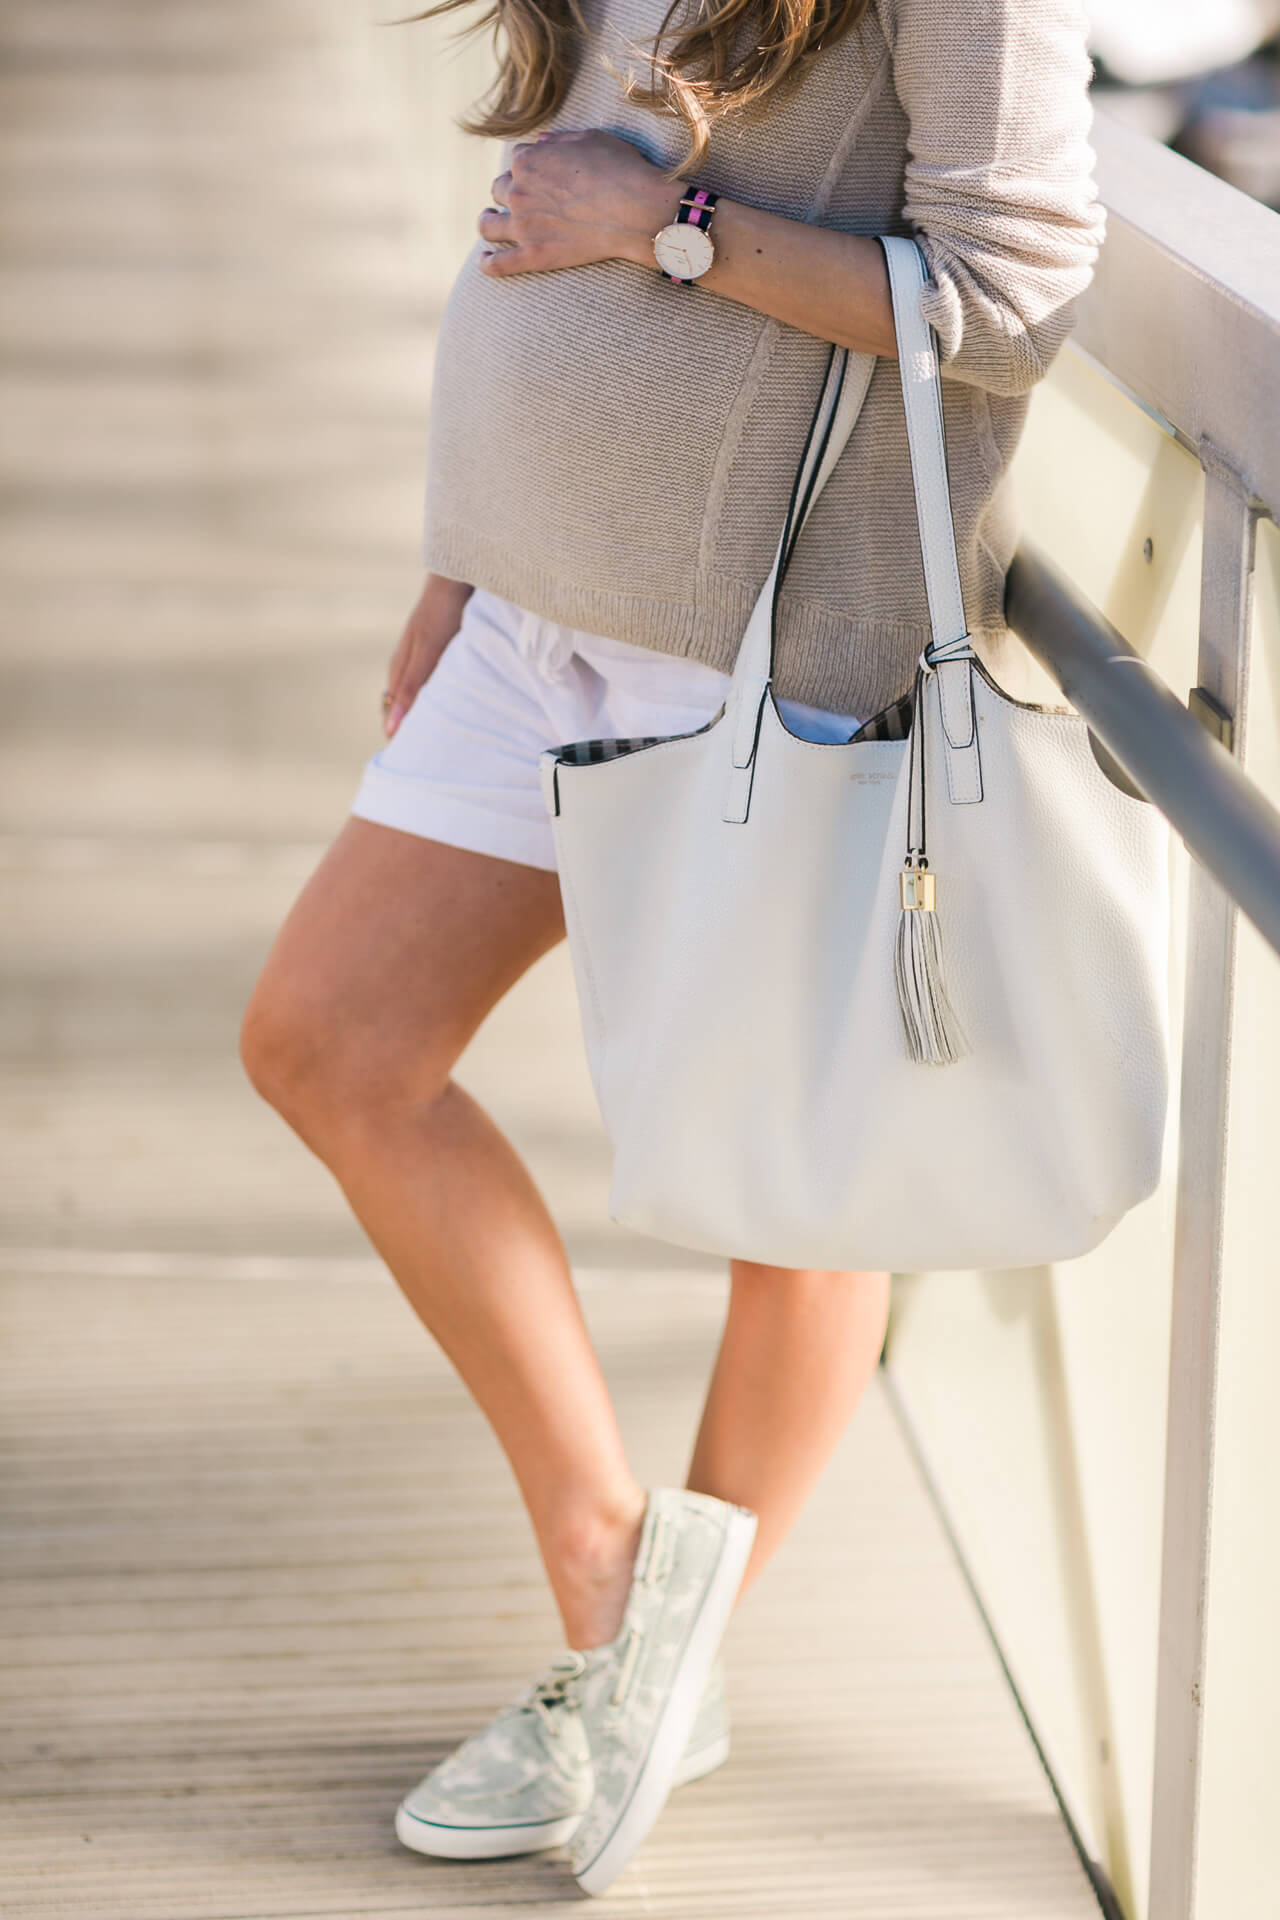 dressing the bump during the summertime with a beige sweater and white linen shorts- maternity outfit inspiration